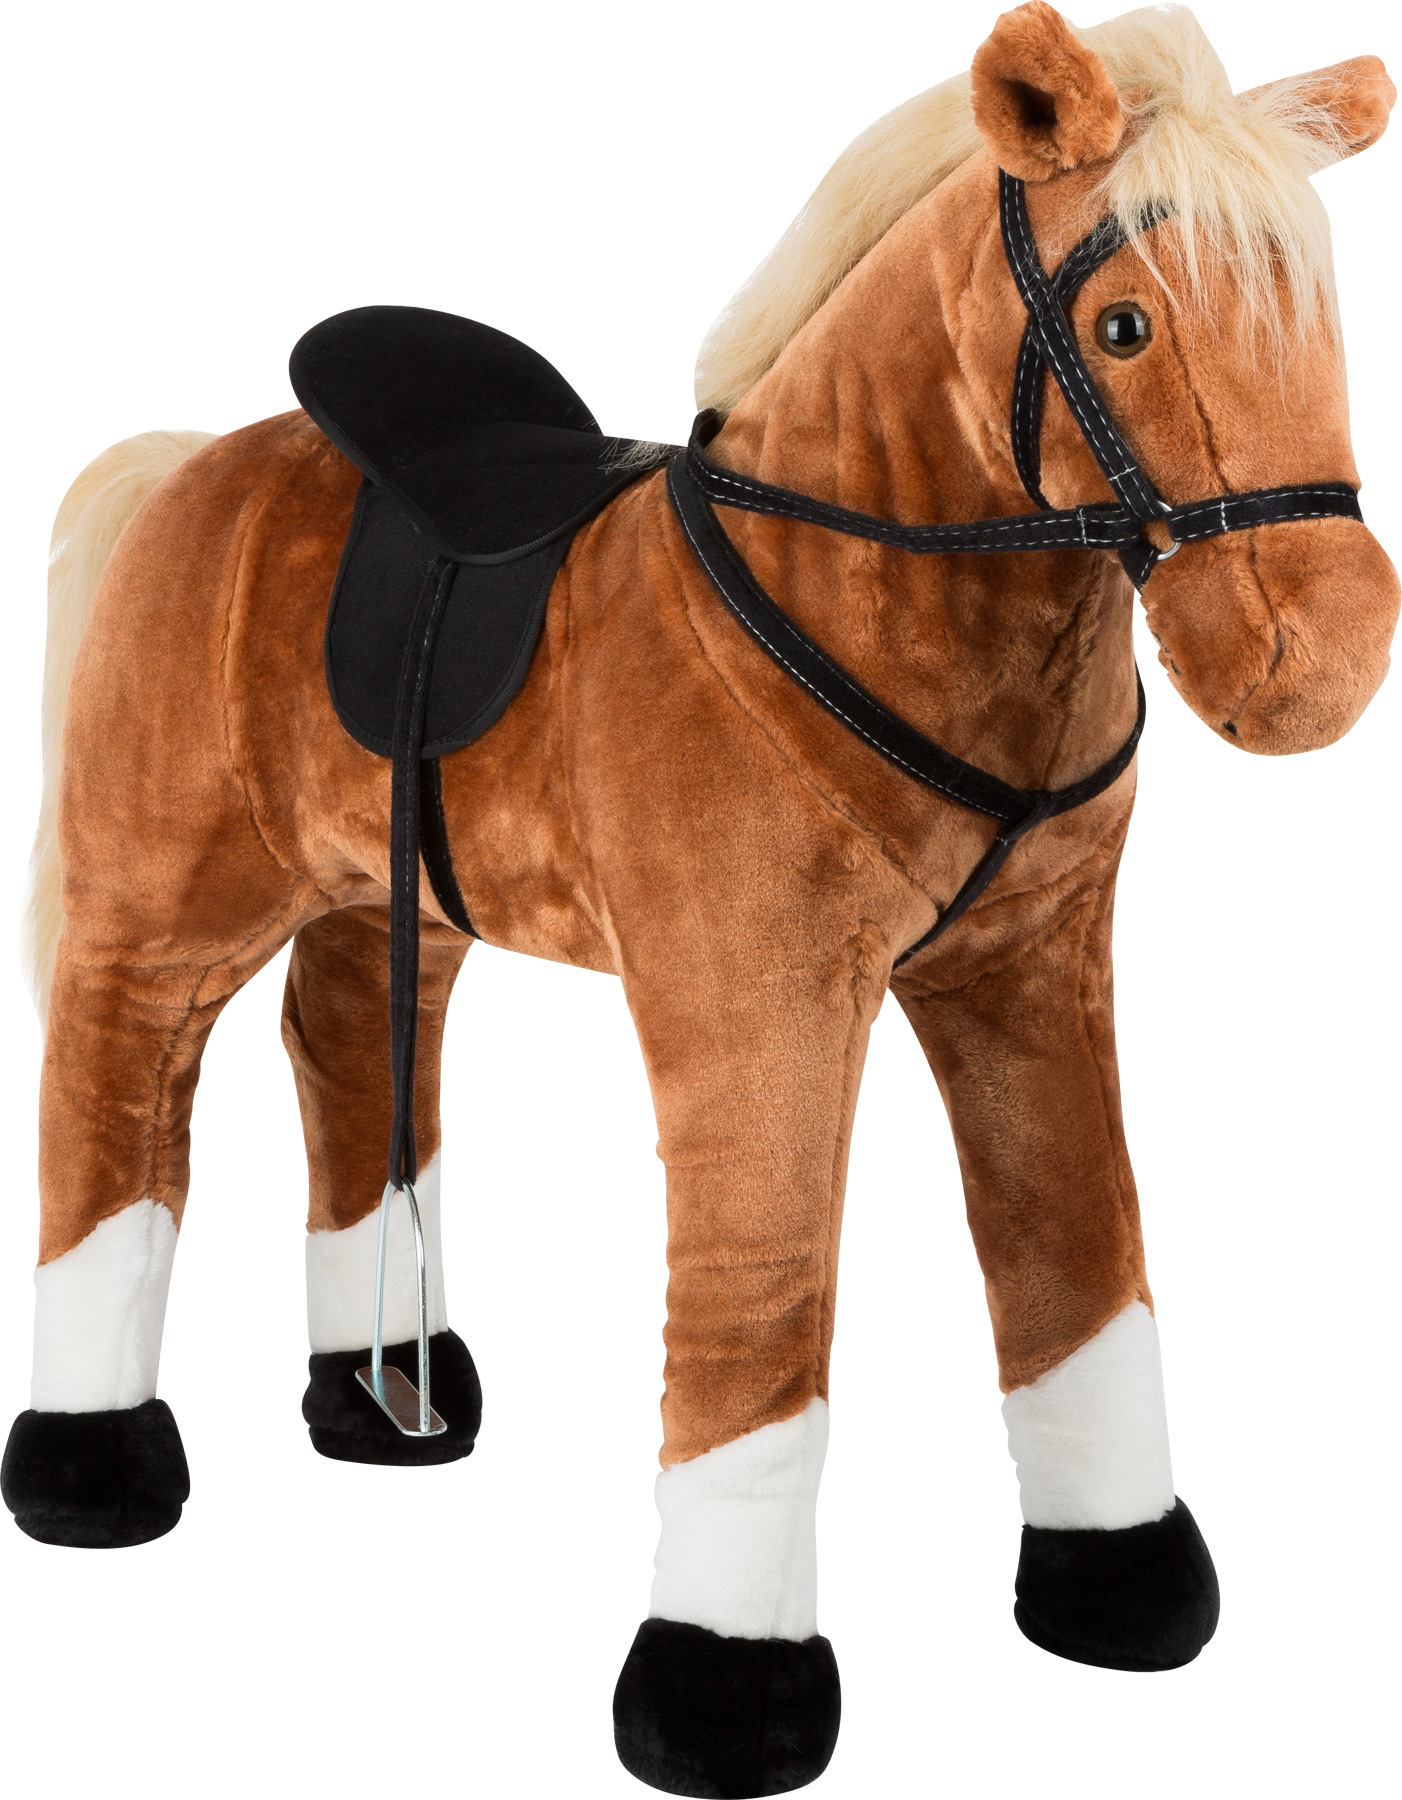 Small Foot Standing Hobby Horse With Sound Brown Hobby And Rocking Horses Import For Kids Aps